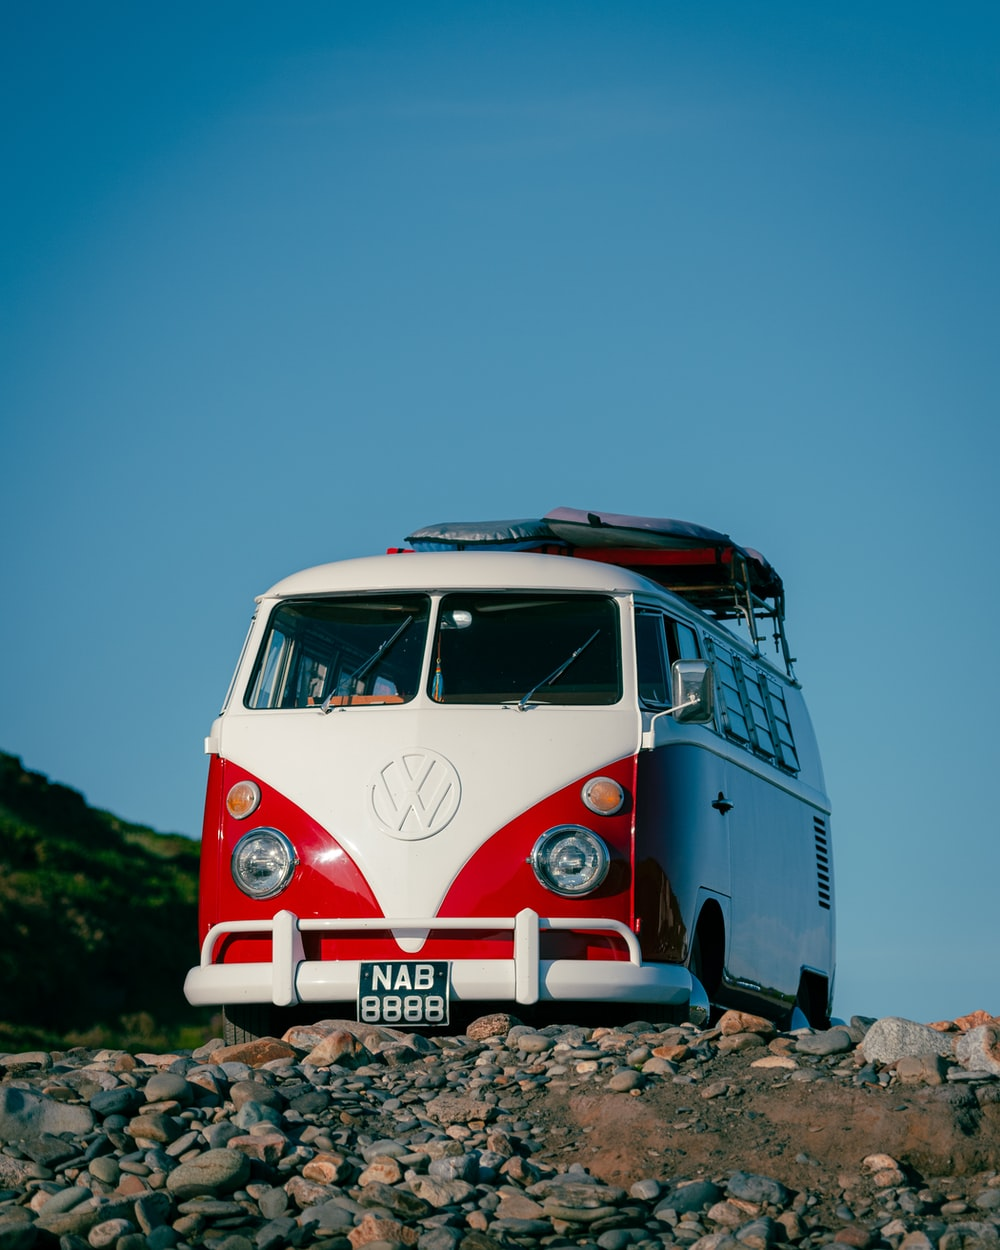 white and red volkswagen t-1 van on gray concrete road during daytime